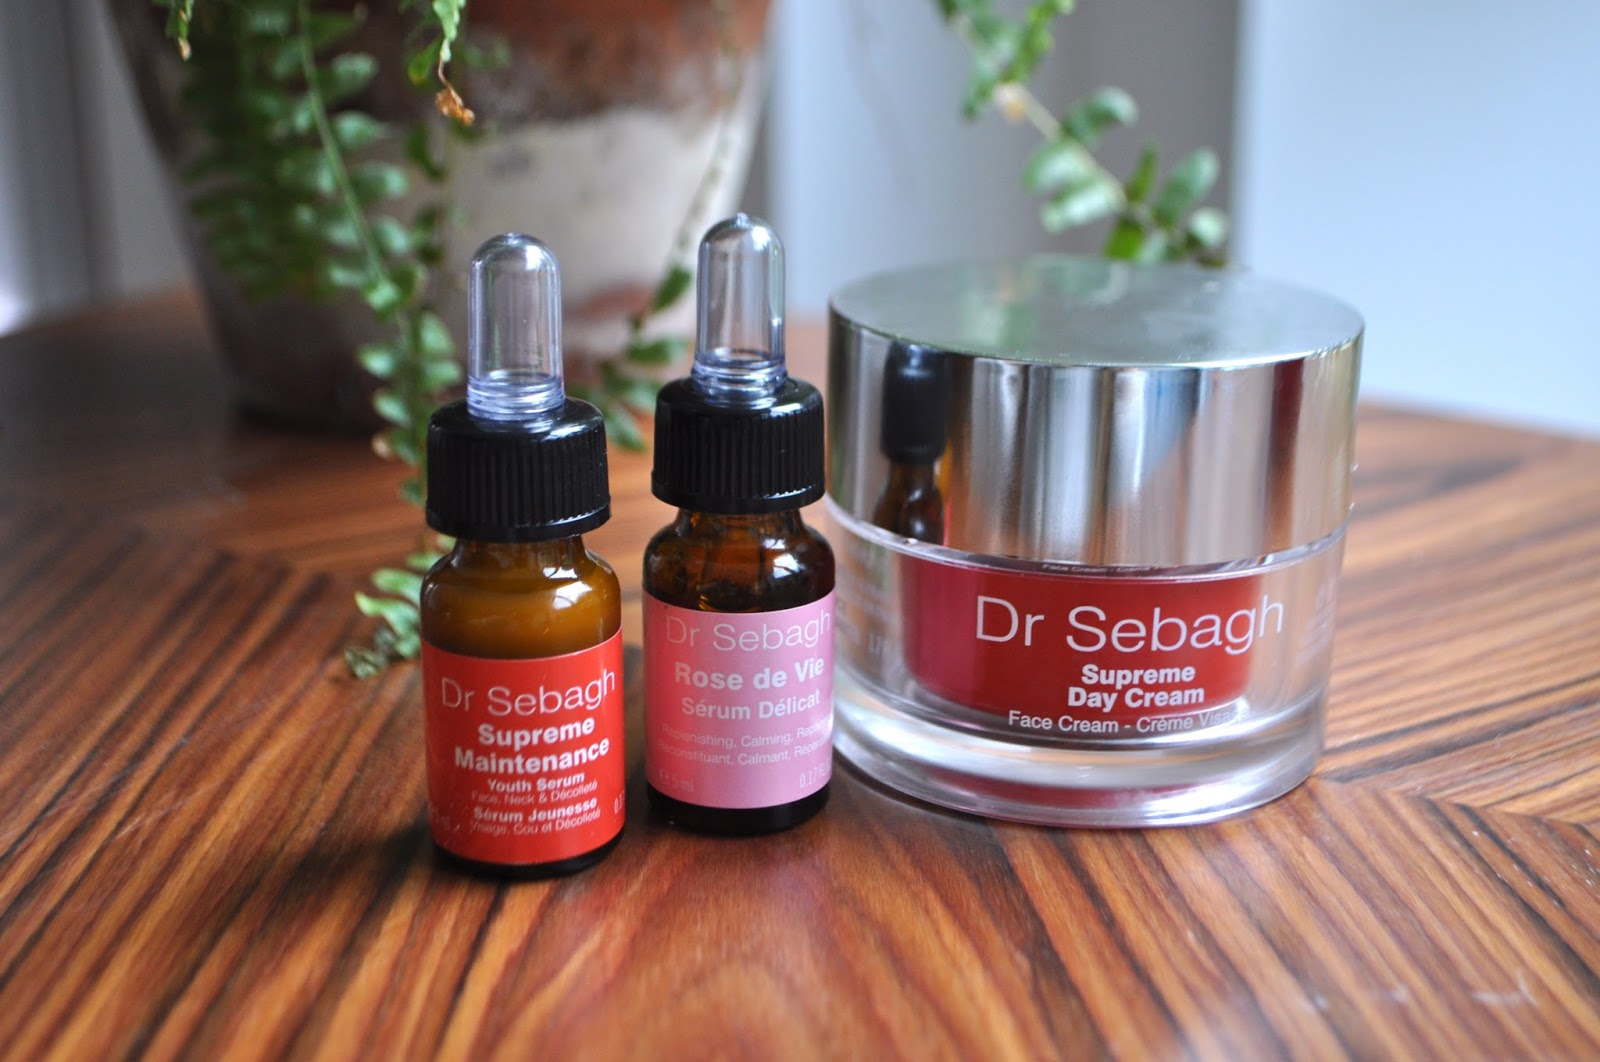 Dr Sebagh Supreme Day Cream Review